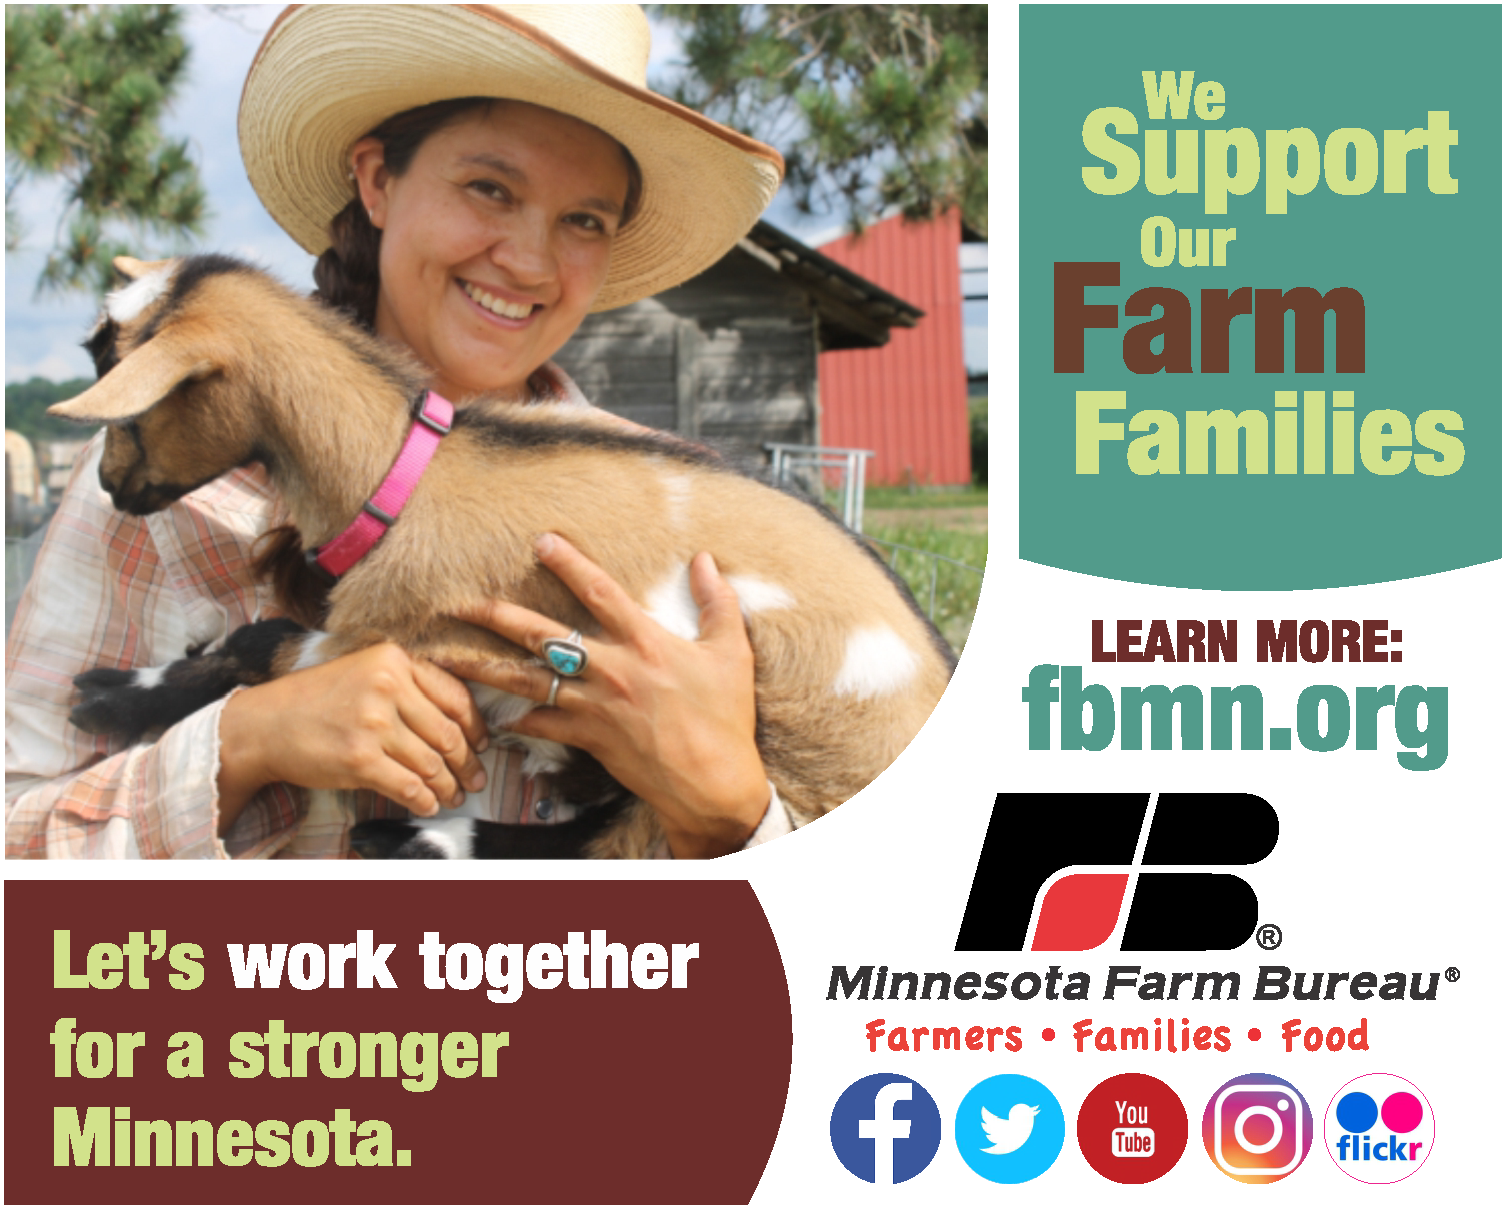 Image of girl holding a goat. Text says We support our farm families and let